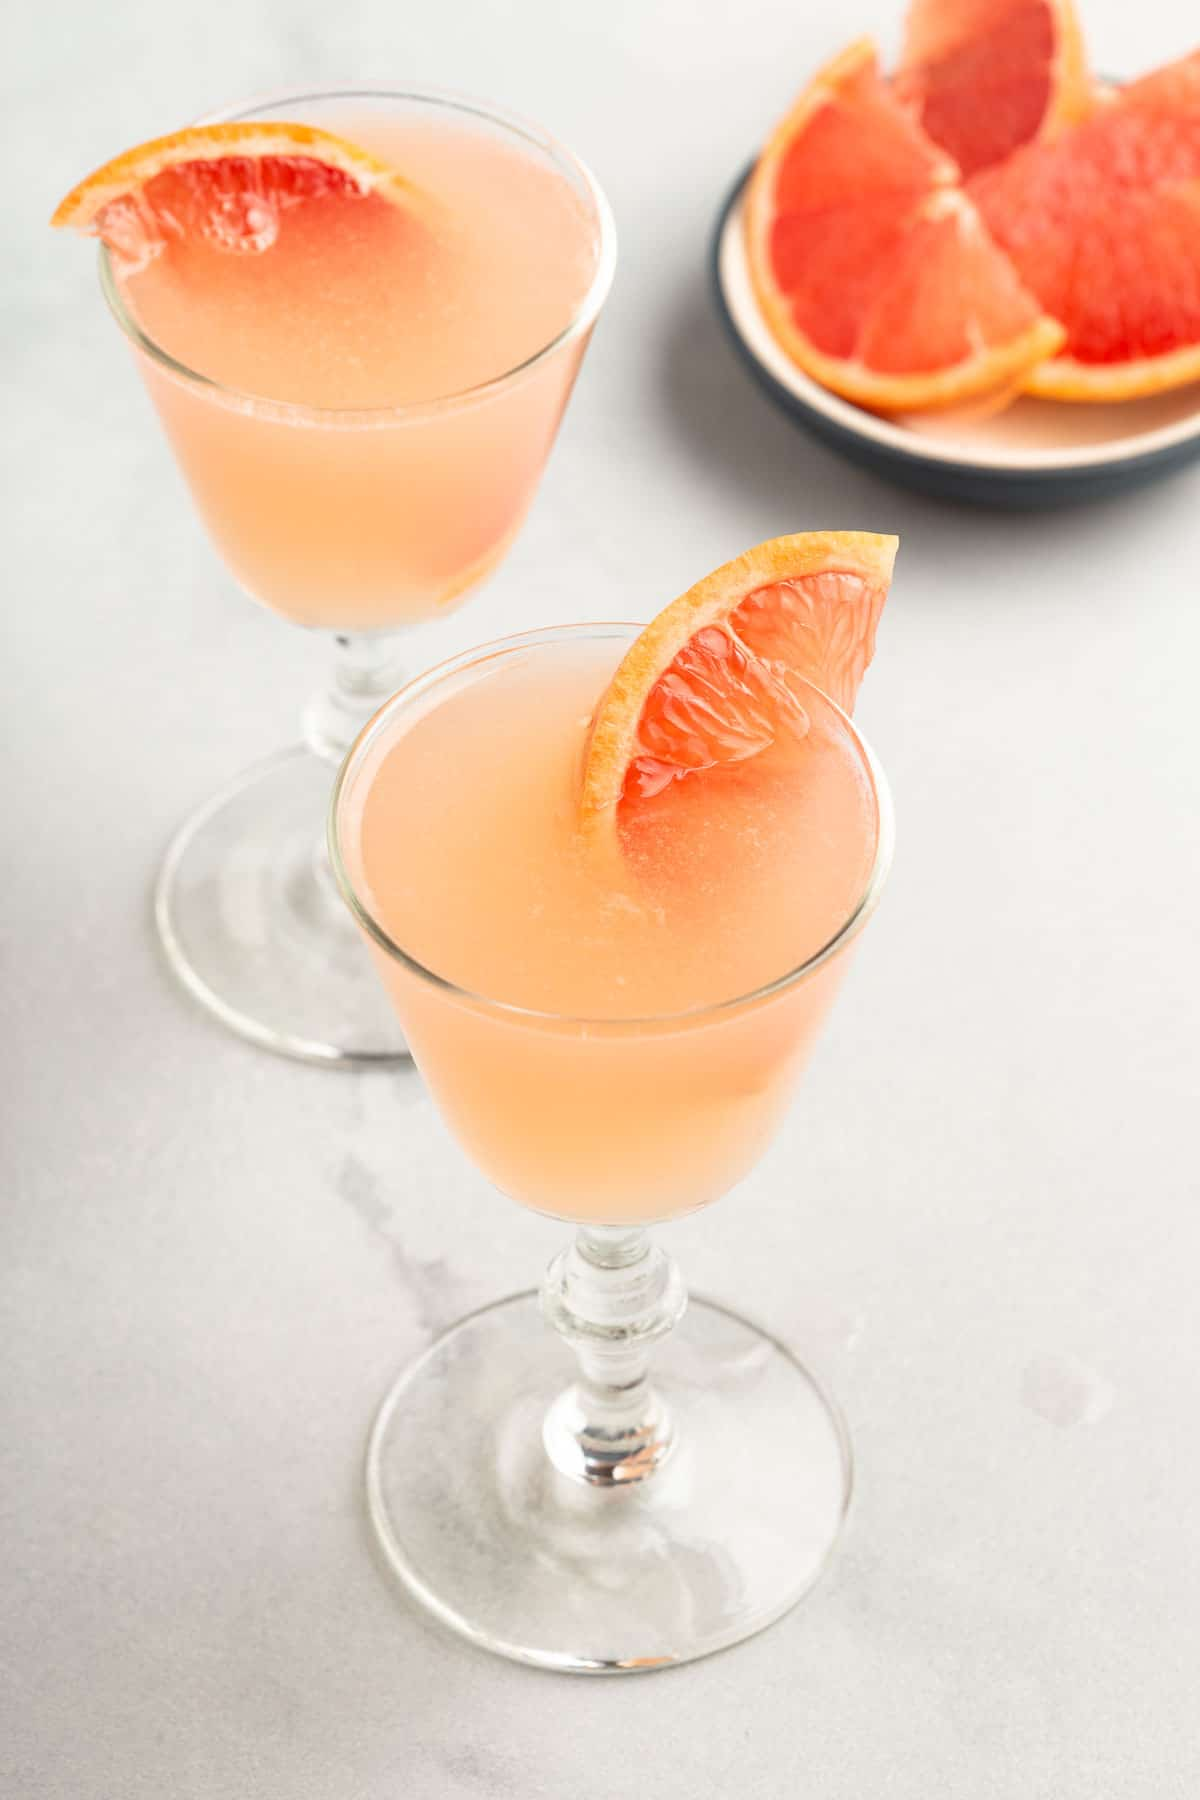 2 grapefruit cocktails garnished with sliced of grapefruit